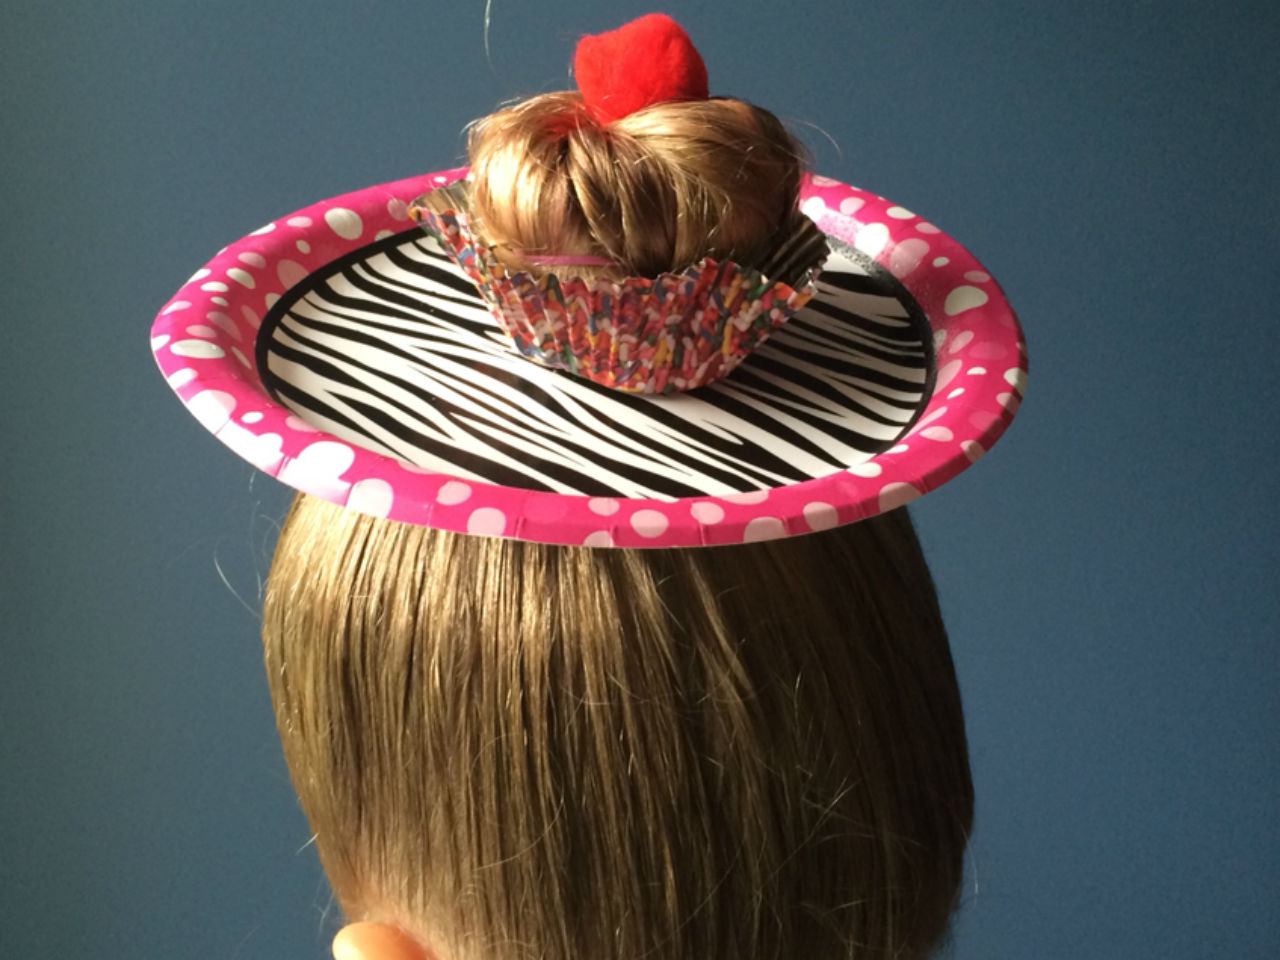 Paper plate with hair bun coming through to make it look like a cupcake on a plate